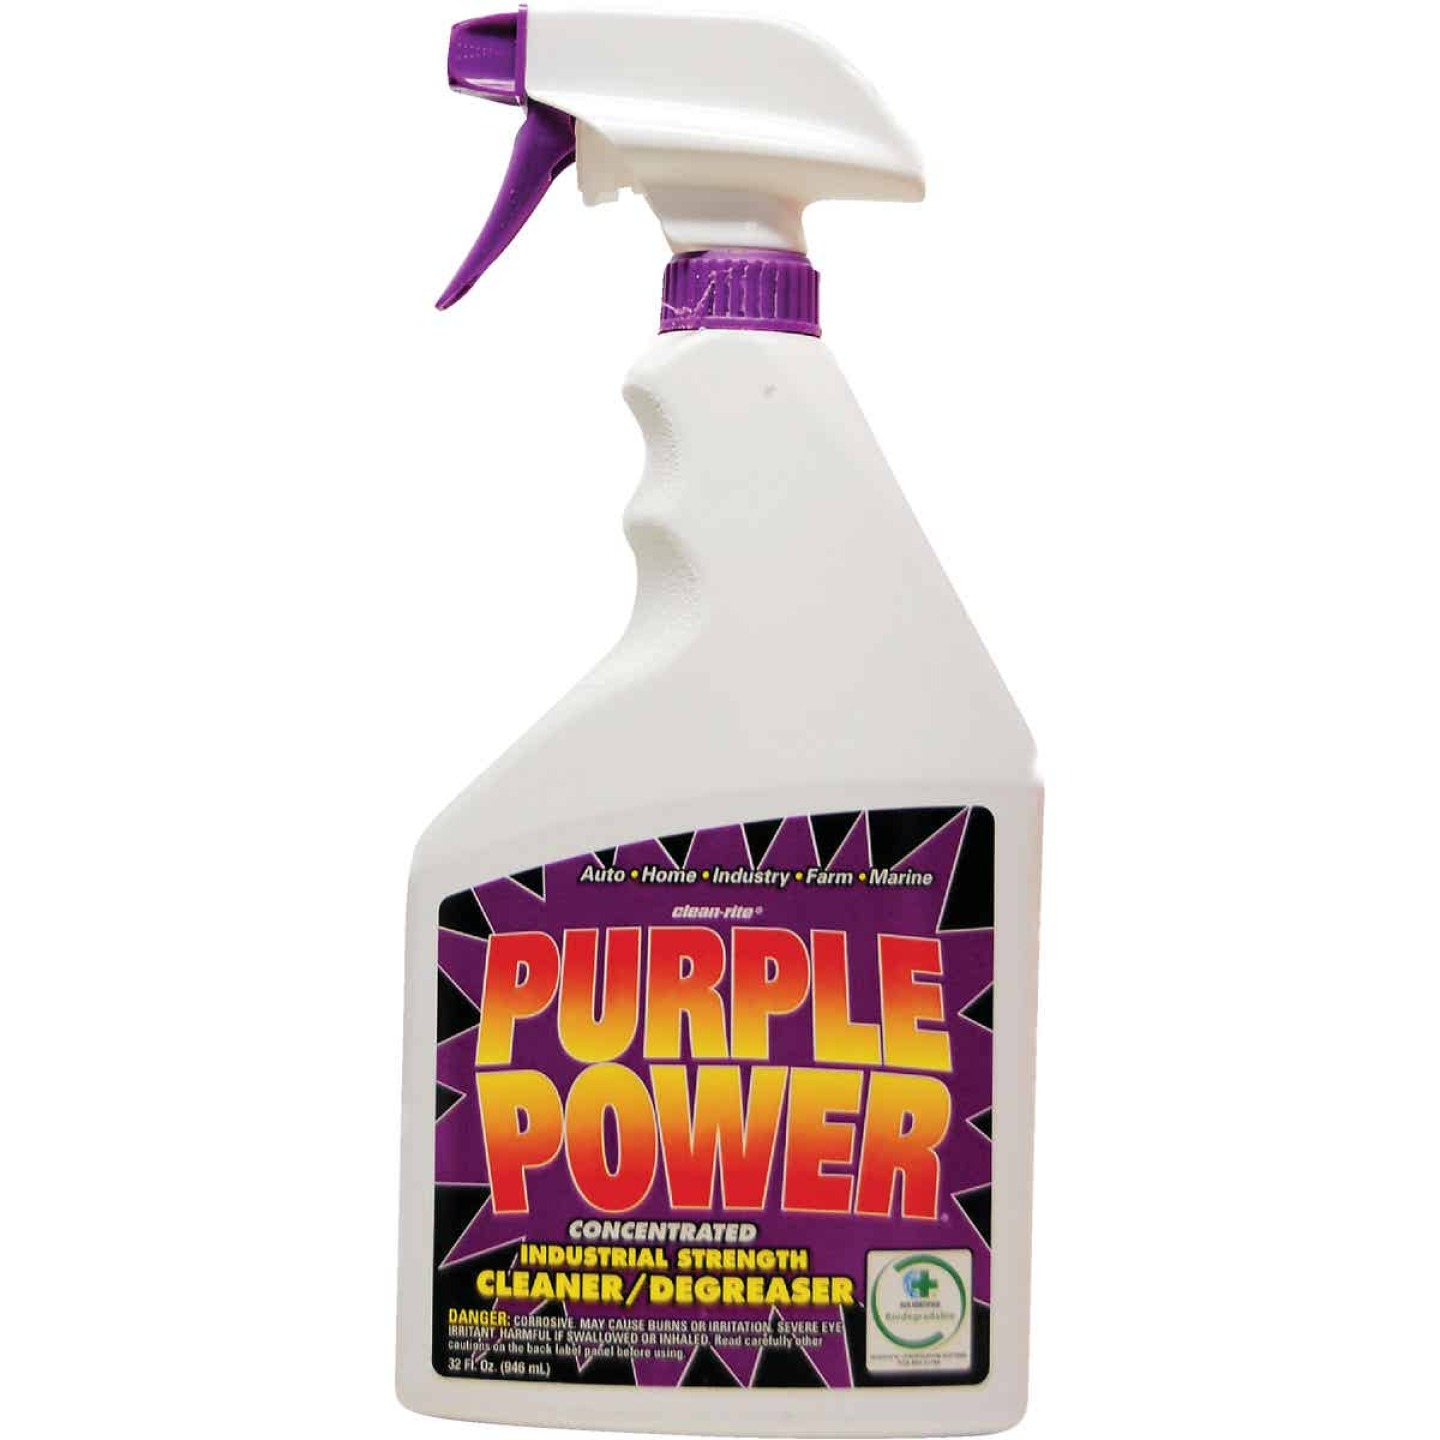 Purple Power 32 Oz. Trigger Spray Industrial Strength Cleaner/Degreaser Image 1